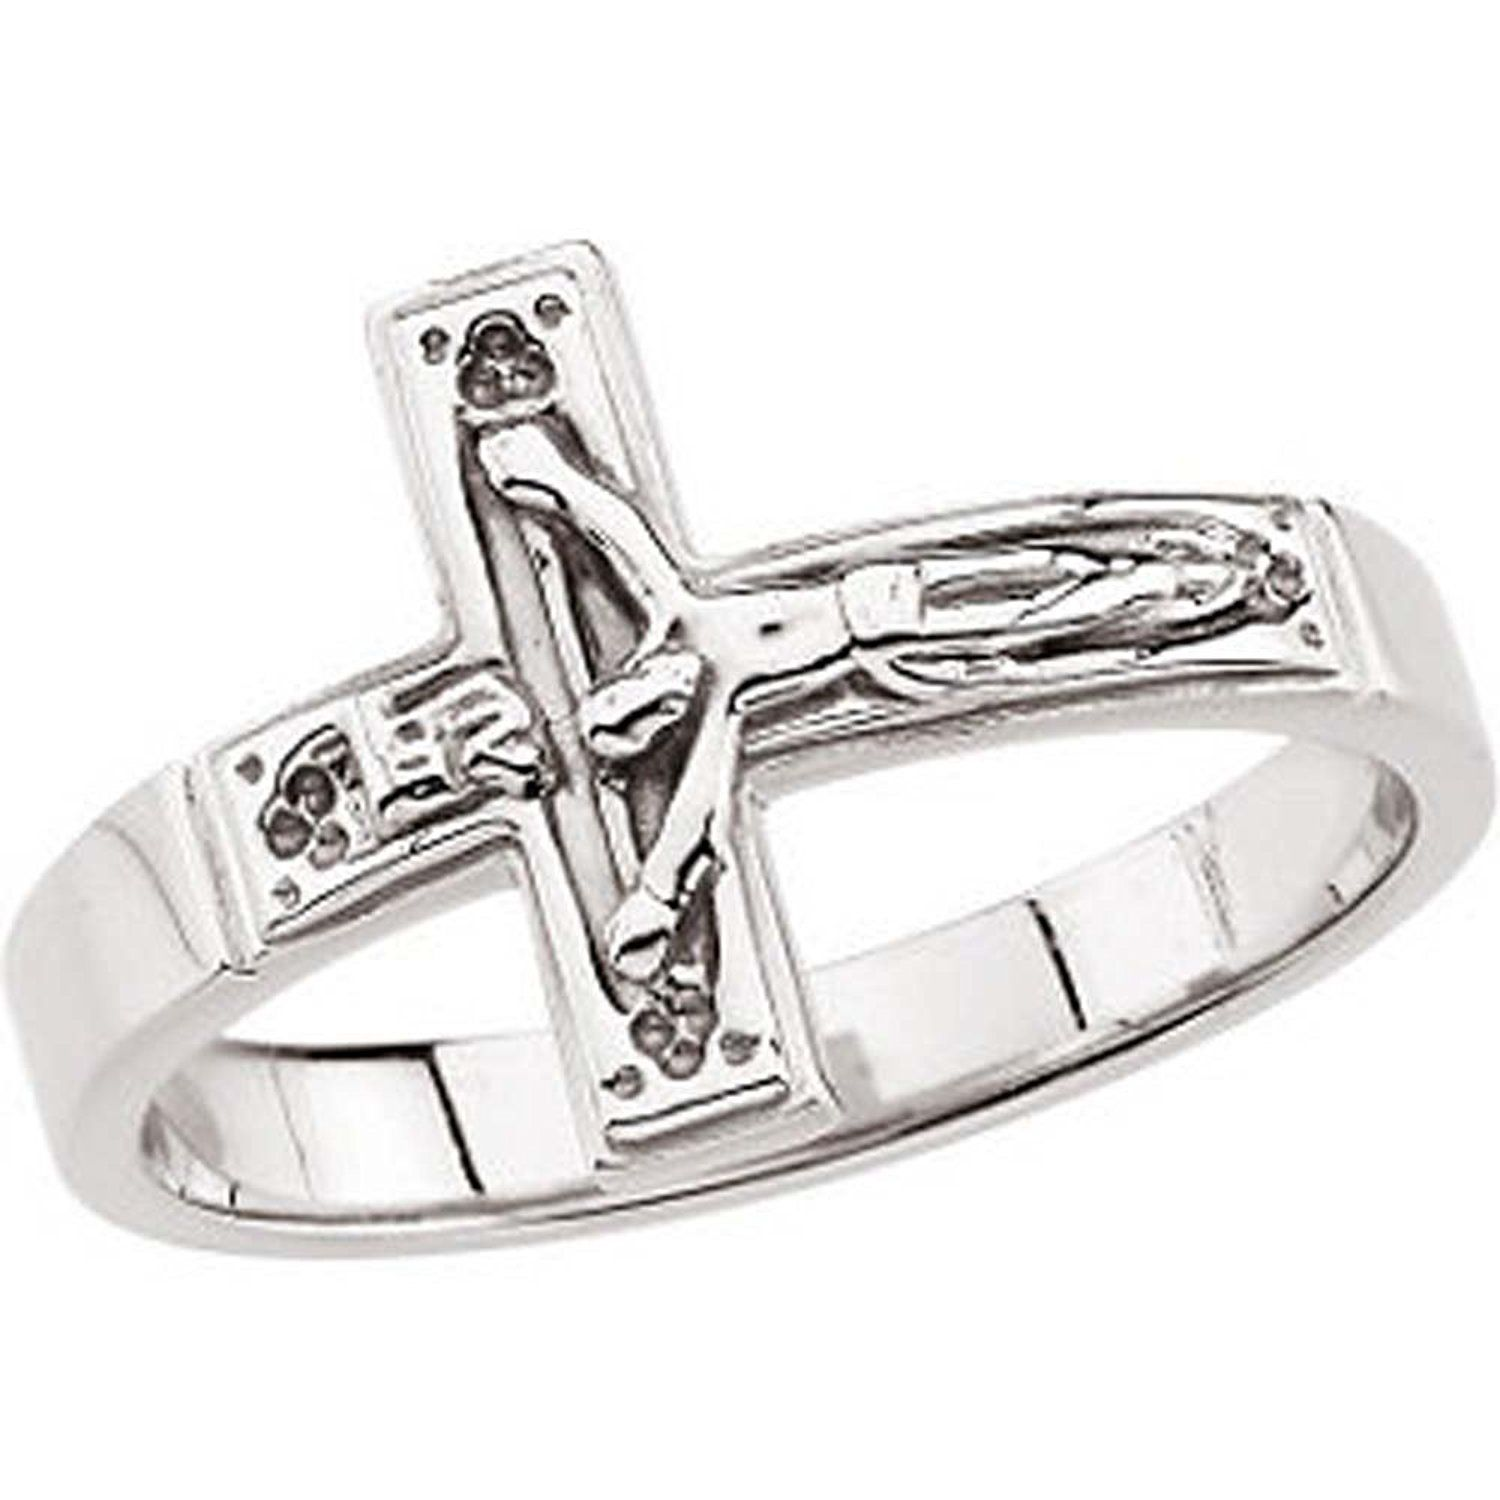 crucifix band limited vault comfort fit wedding free shop delivery gold rings ring uk